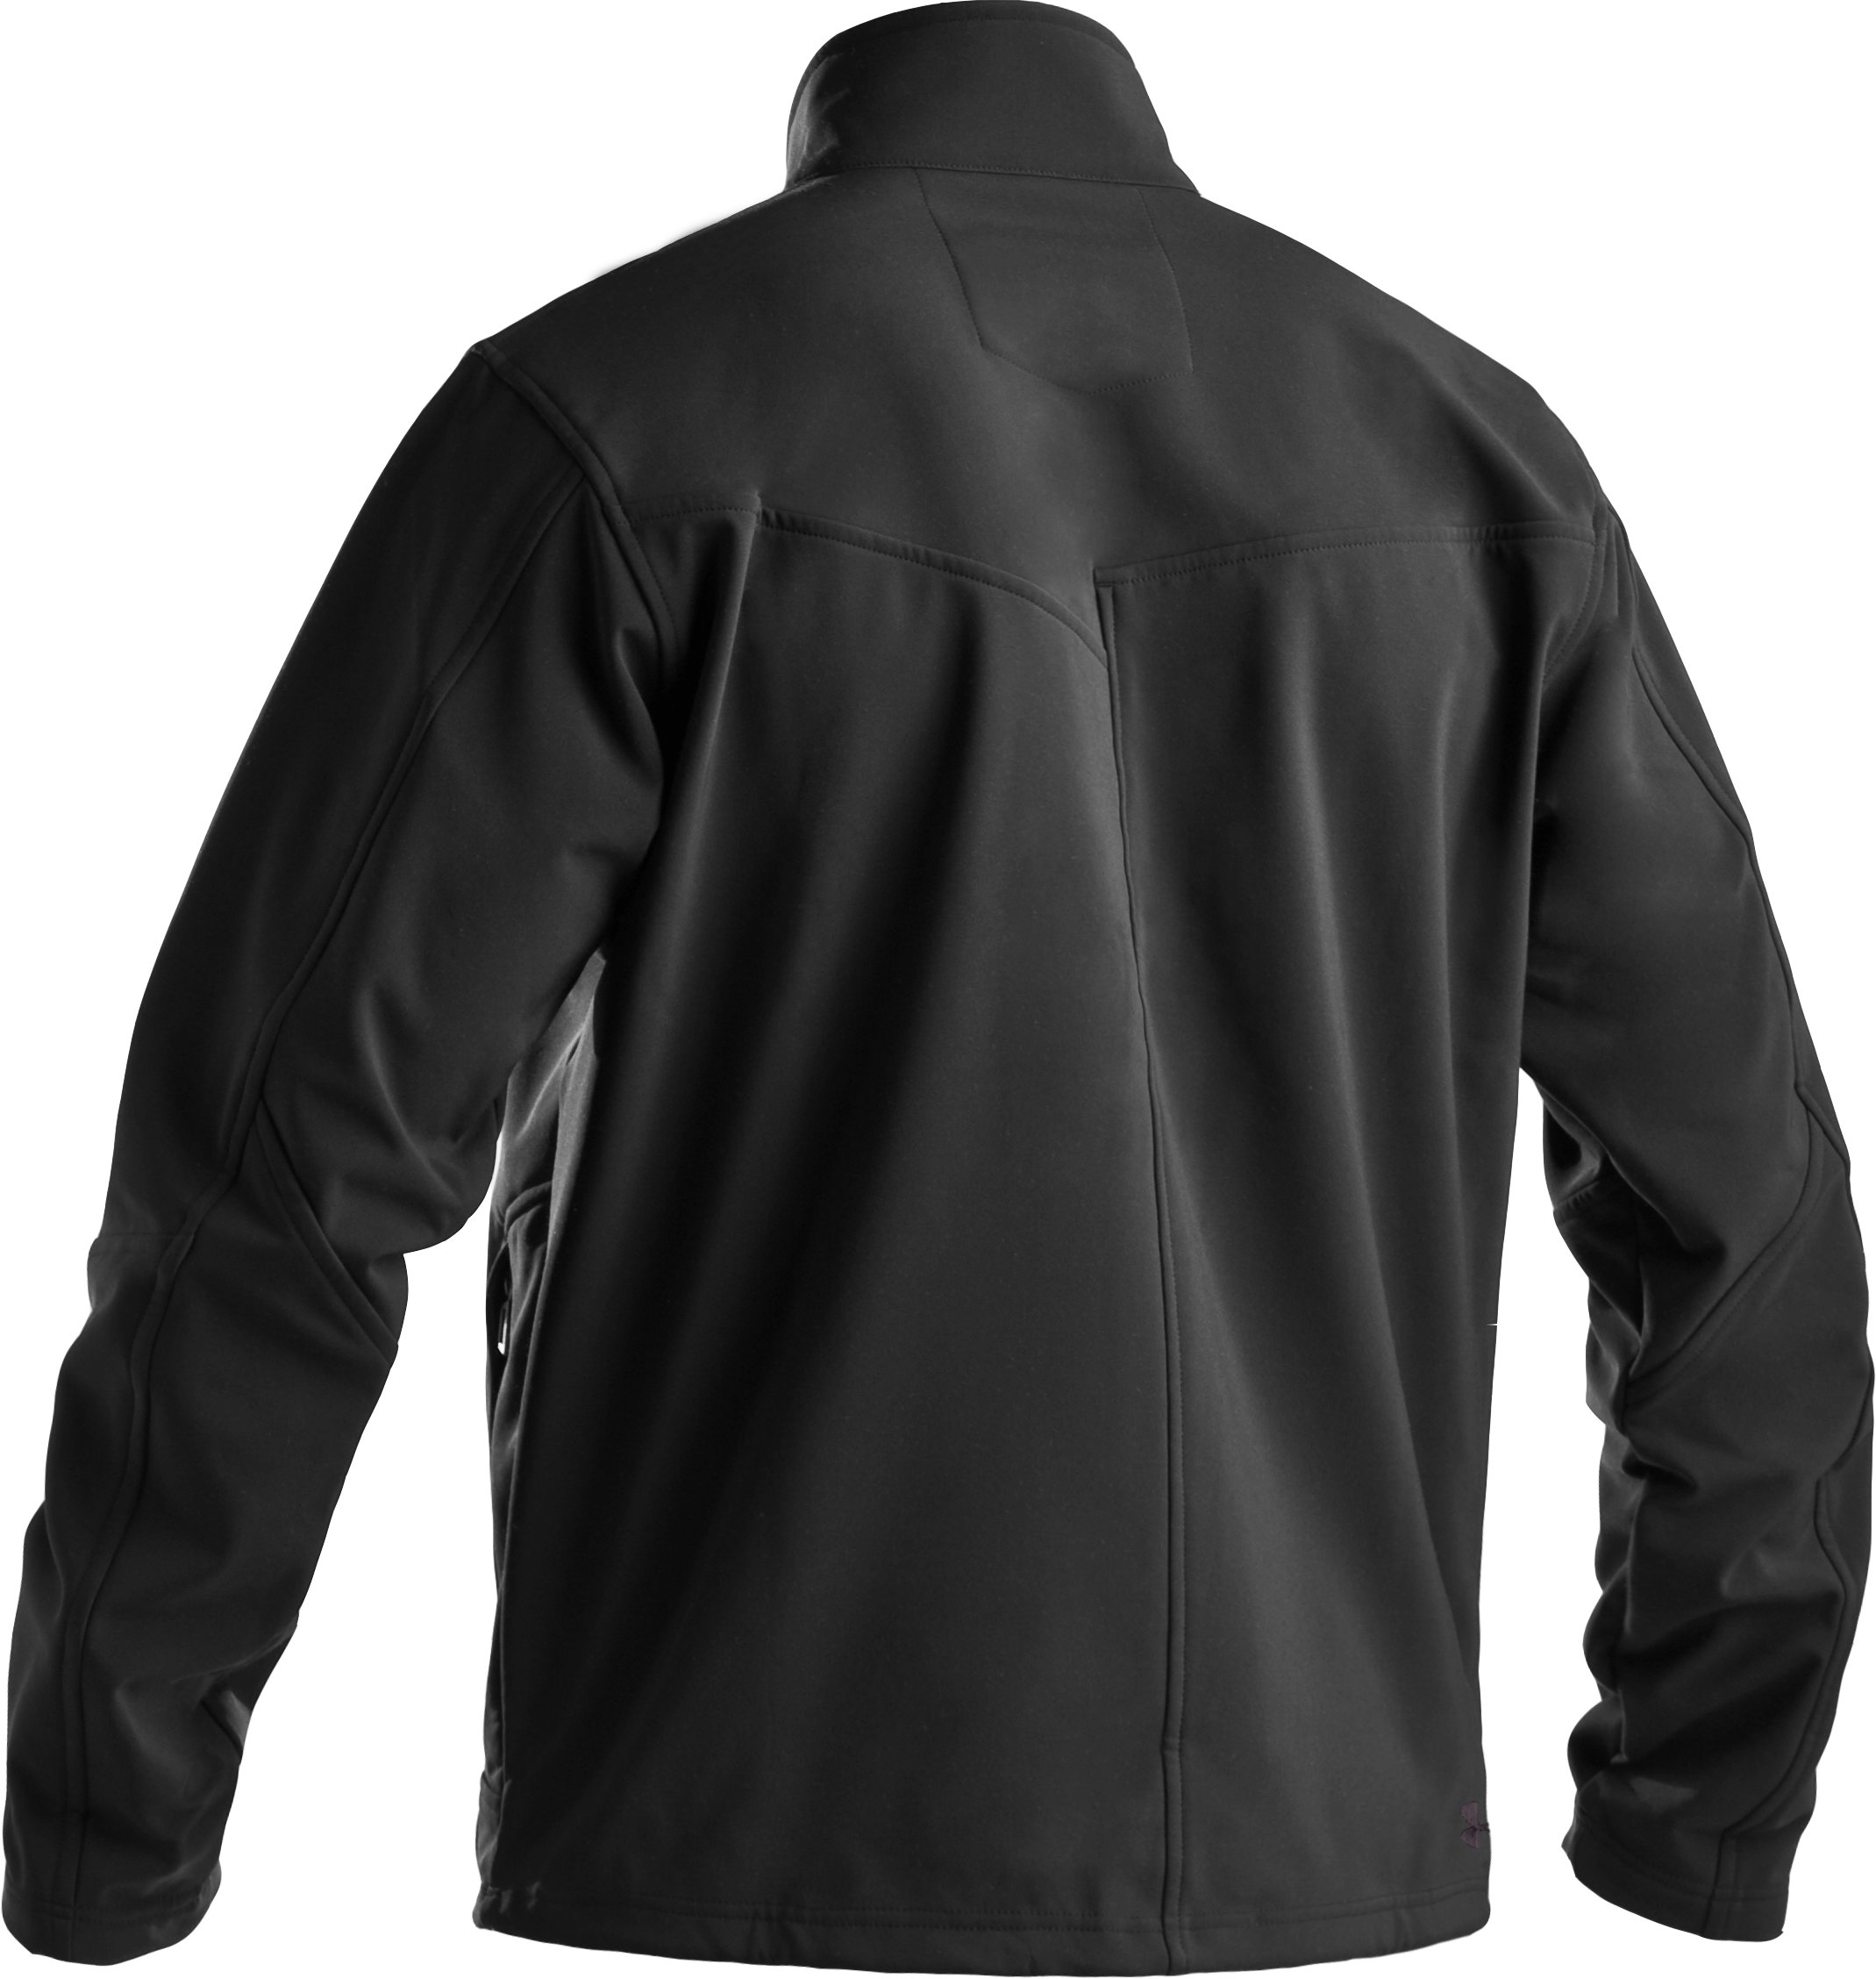 Men's Skyscraper Softshell Jacket, Black